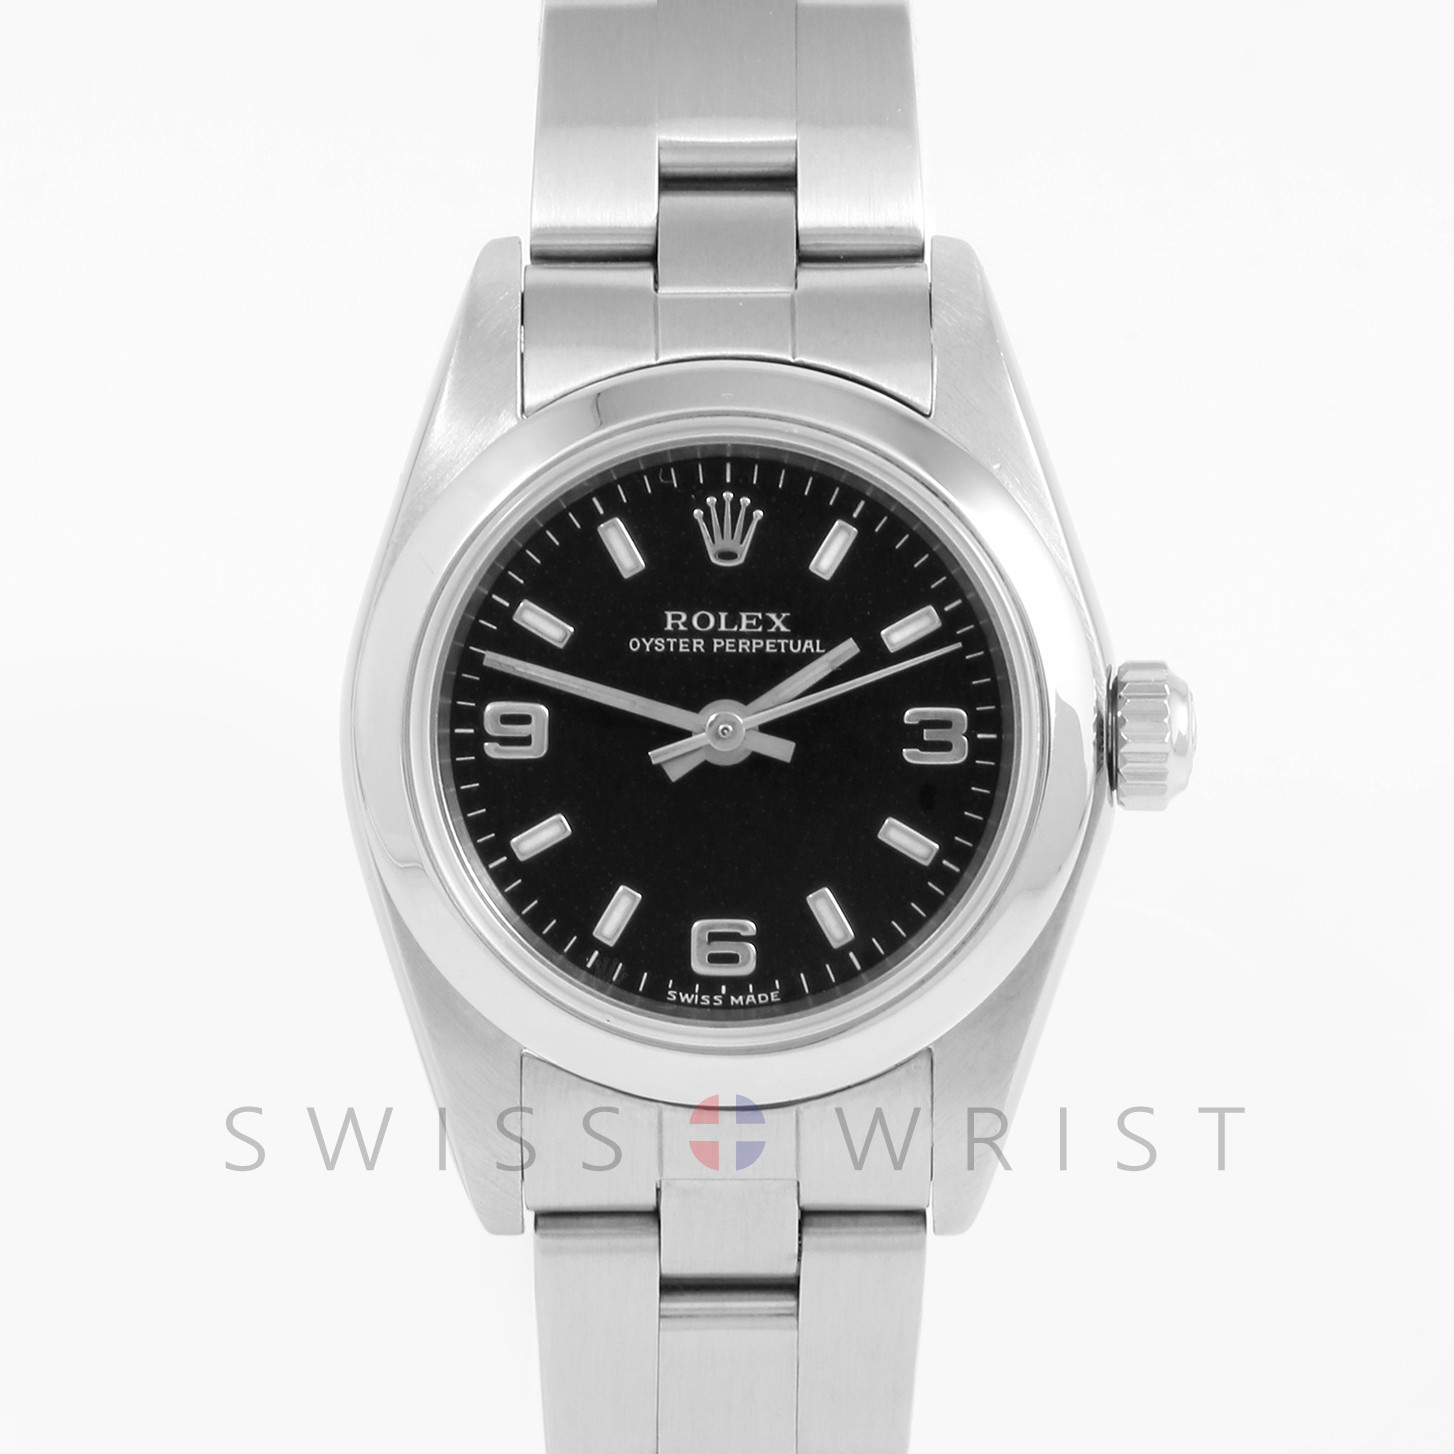 Rolex Oyster Perpetual 24 mm 76080 Stainless Steel w/ Black Dial, Smooth Bezel on an Oyster Bracelet - Pre-Owned Ladies Watch